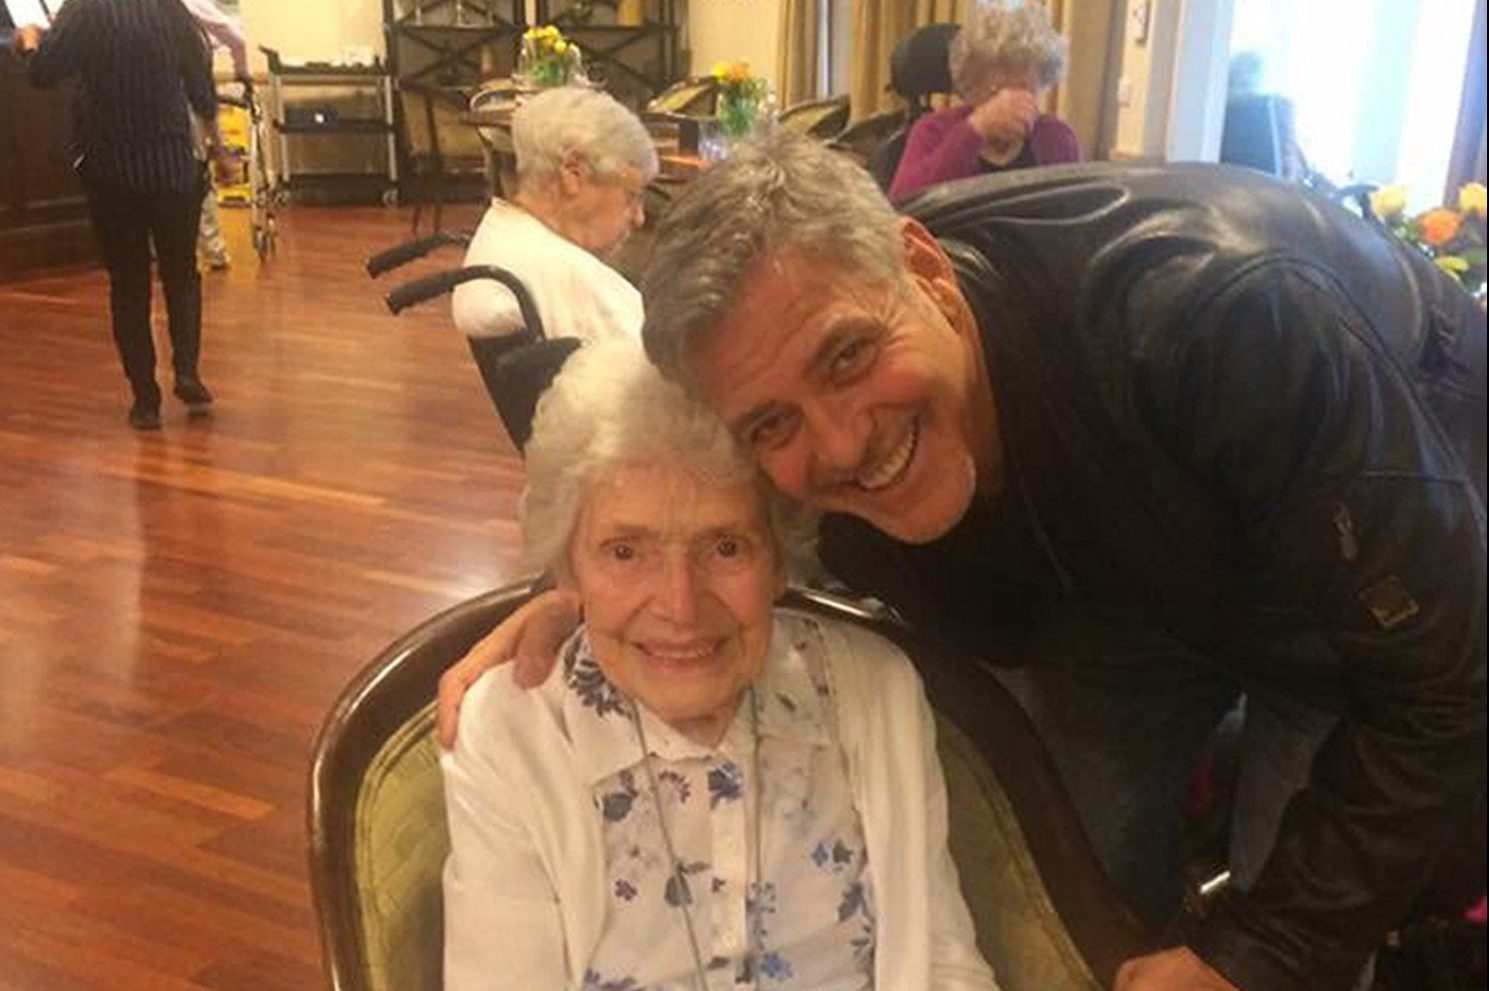 Undated Sunrise UK handout photo of George Clooney with Pat Adams. PRESS ASSOCIATION Photo. Issue date: Monday March 20, 2017. Actor George Clooney surprised a fan by visiting her in her assisted living home to wish her a happy 87th birthday. He brought with him a card and a bunch of flowers as he popped in for a chat and a picture with his long-time admirer Pat Adams on Monday. Linda Jones, a worker at the Sunrise Sonning Retirement and Assisted Living Facility, posted a picture of the beaming pair on Facebook. See PA story SHOWBIZ Clooney. Photo credit should read: Sunrise UK/PA Wire NOTE TO EDITORS: This handout photo may only be used in for editorial reporting purposes for the contemporaneous illustration of events, things or the people in the image or facts mentioned in the caption. Reuse of the picture may require further permission from the copyright holder.